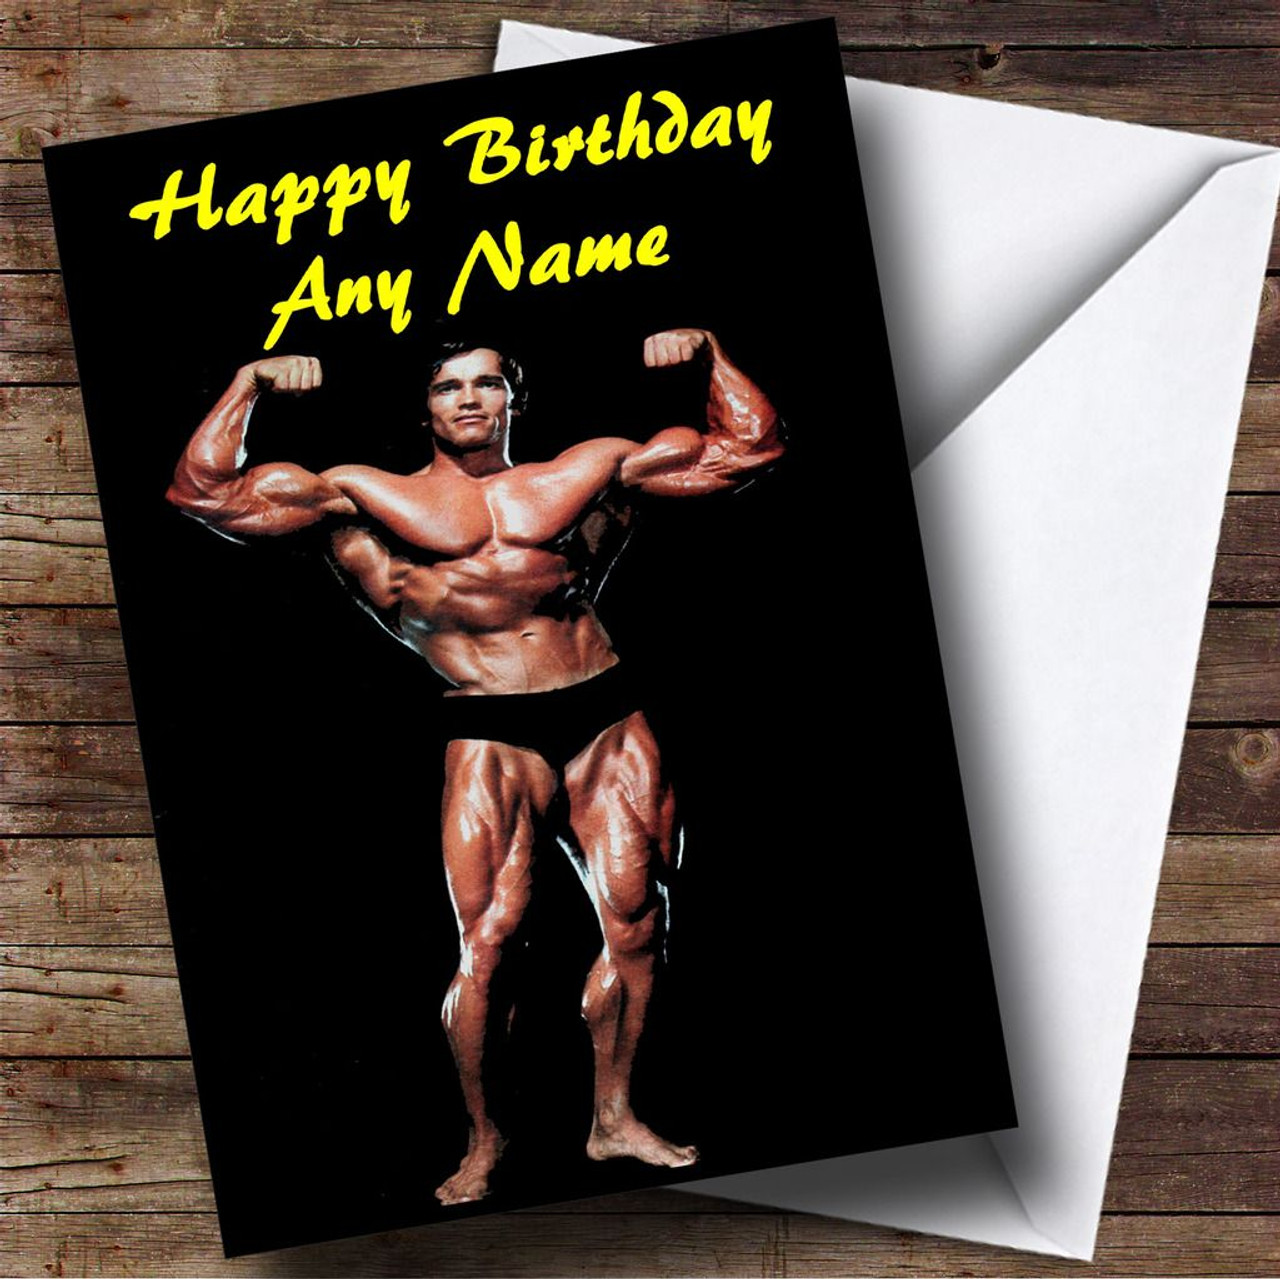 Arnold schwarzenegger muscles personalised birthday card the card zoo arnold schwarzenegger muscles personalised birthday card bookmarktalkfo Image collections